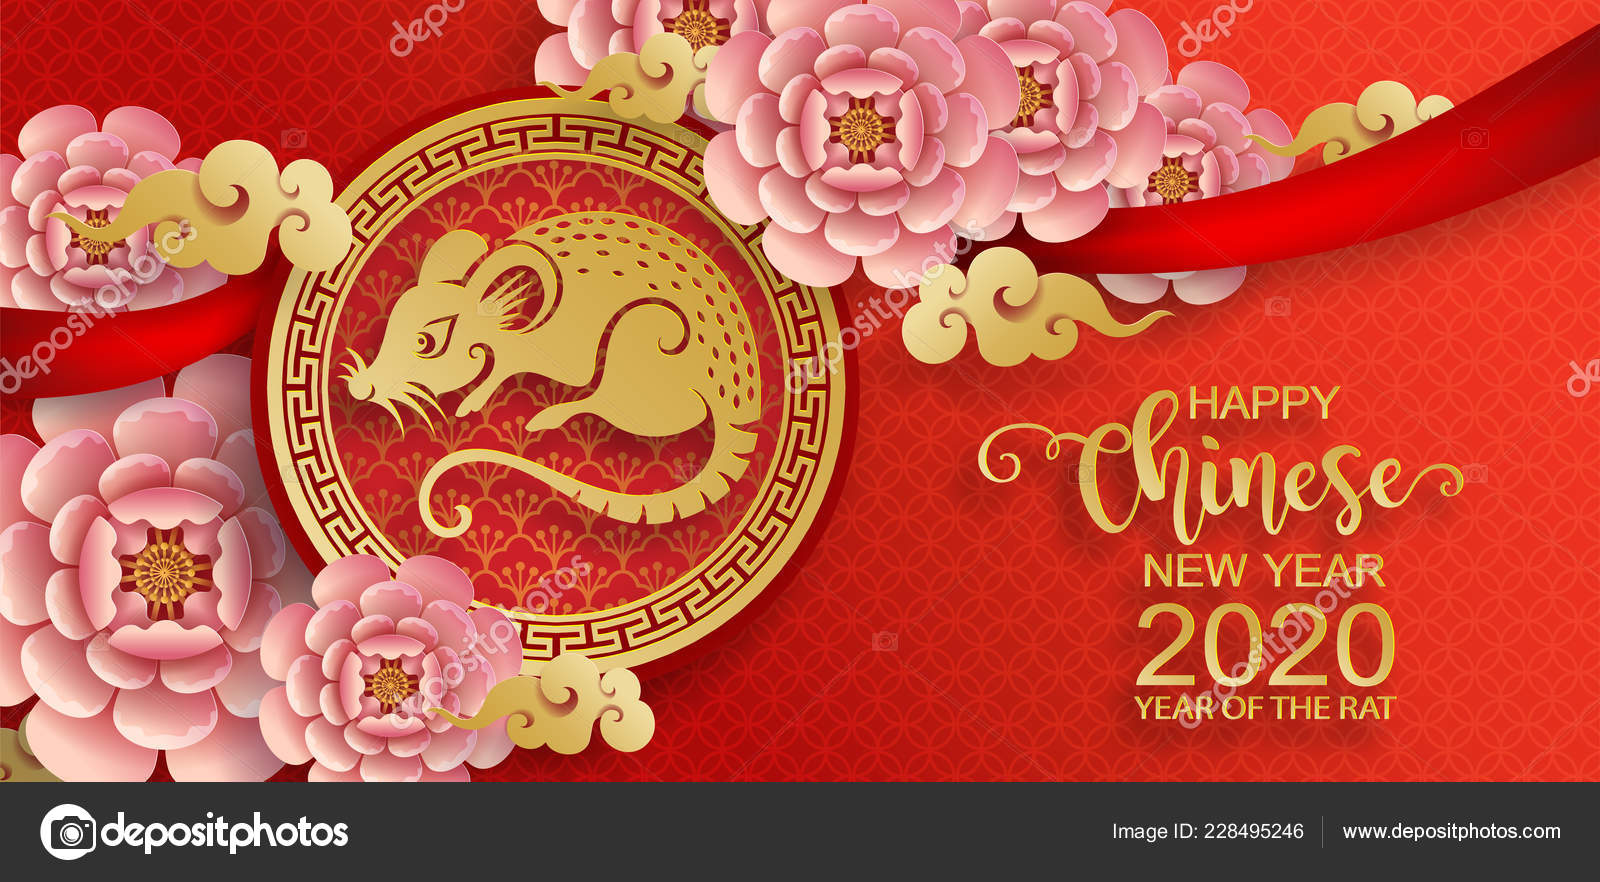 It's just an image of Légend Chinese New Year 2020 Images Free